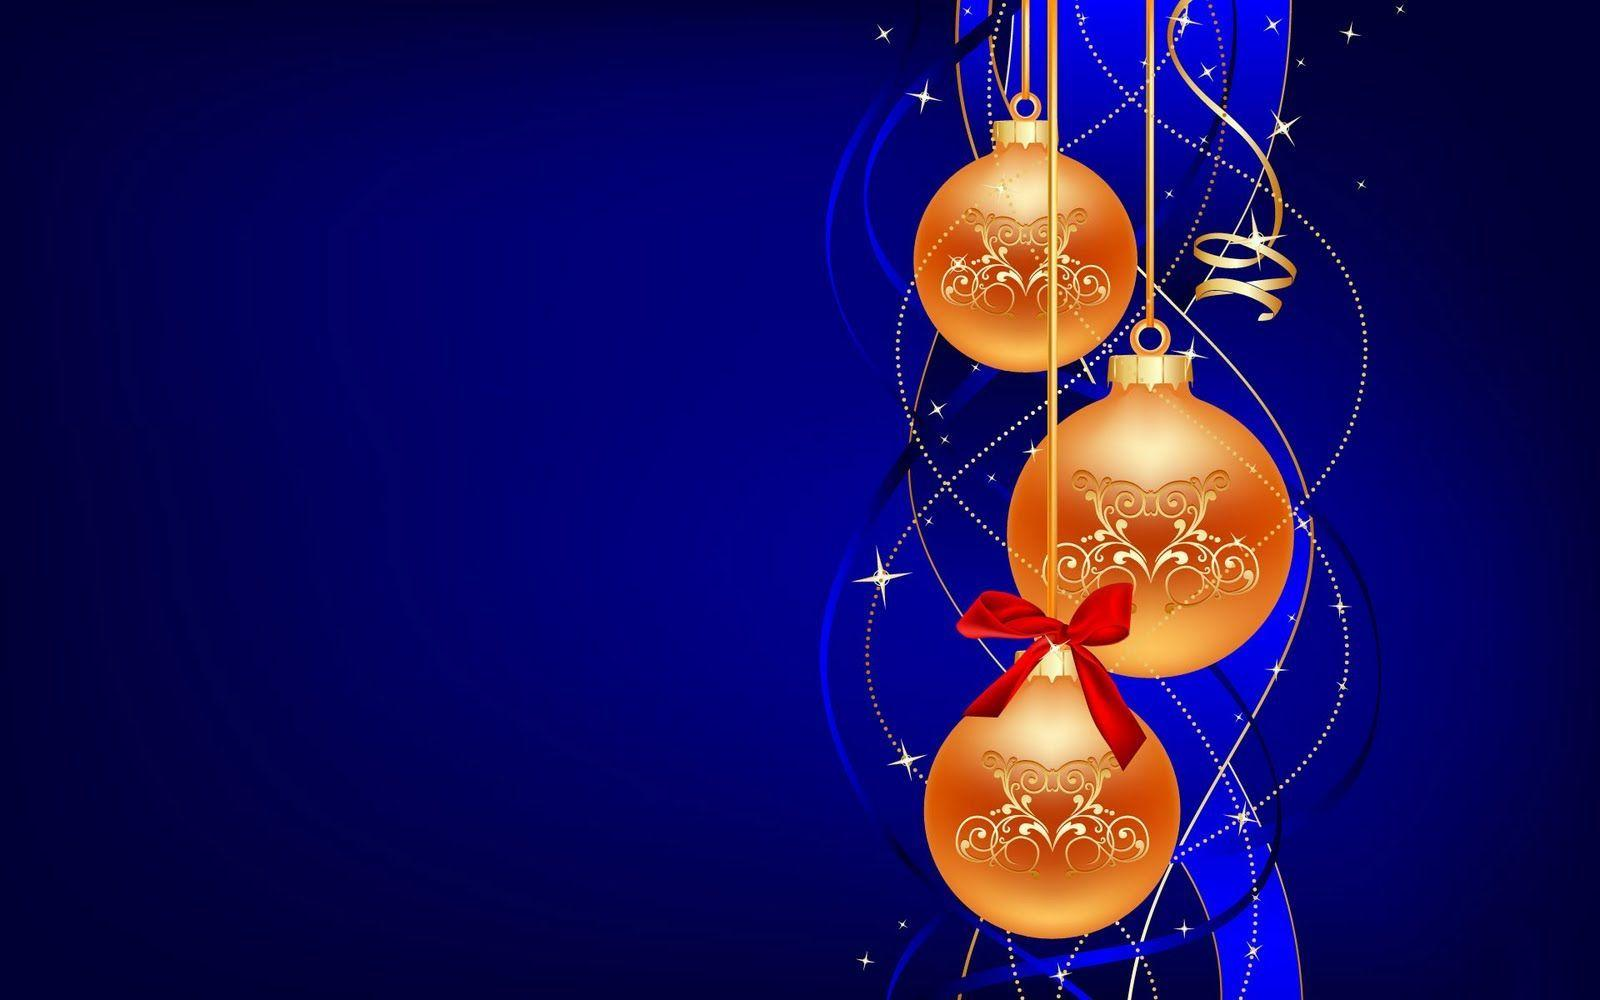 Wallpapers For > Religious Christmas Backgrounds Free